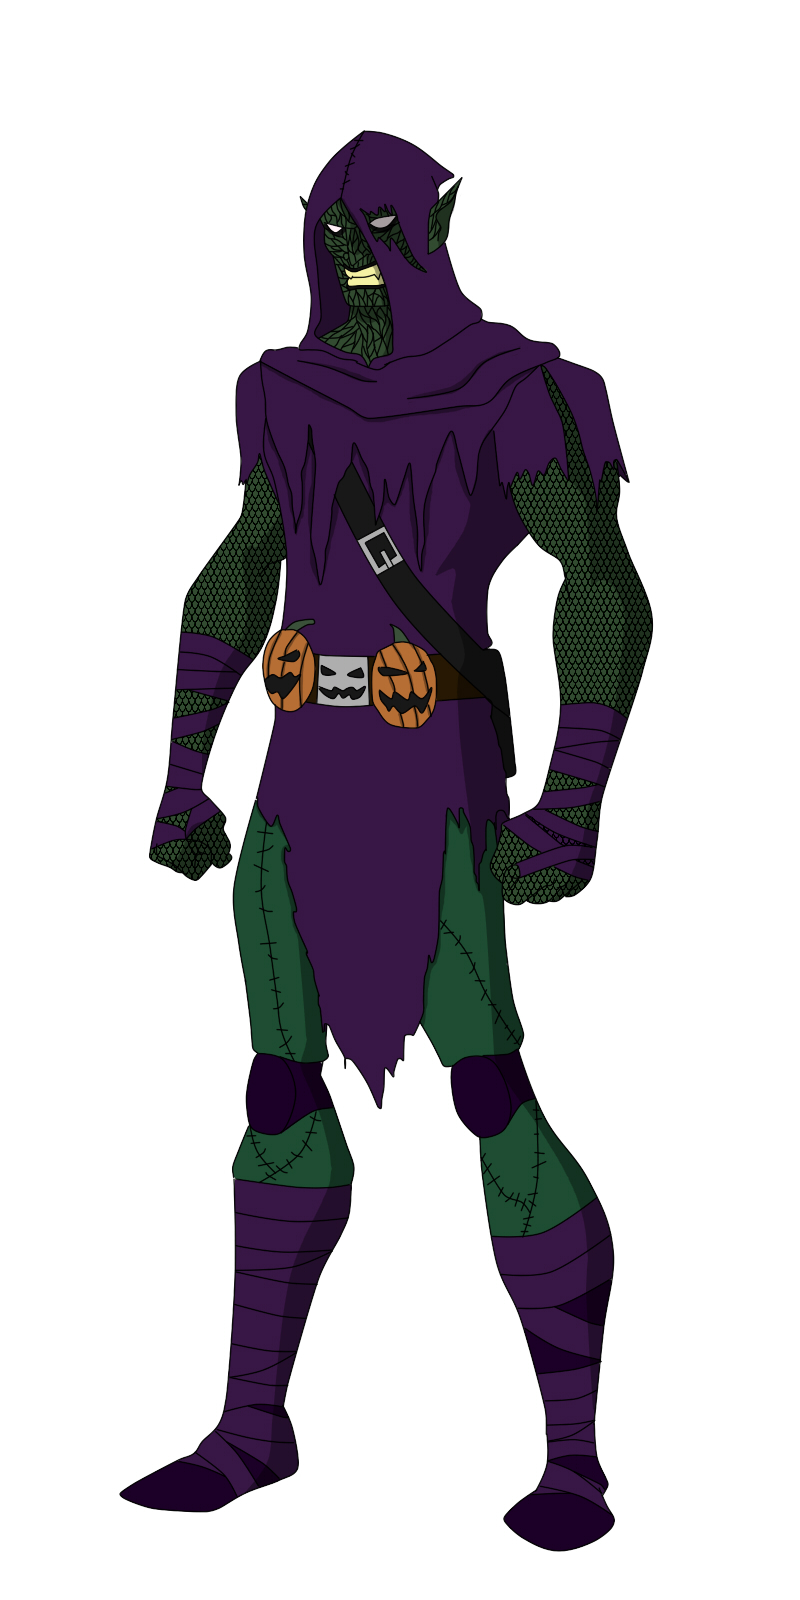 129 Best Best Gifts For 6 Year Girls Images On: The Green Goblin Redesign By Shorterazer On DeviantArt